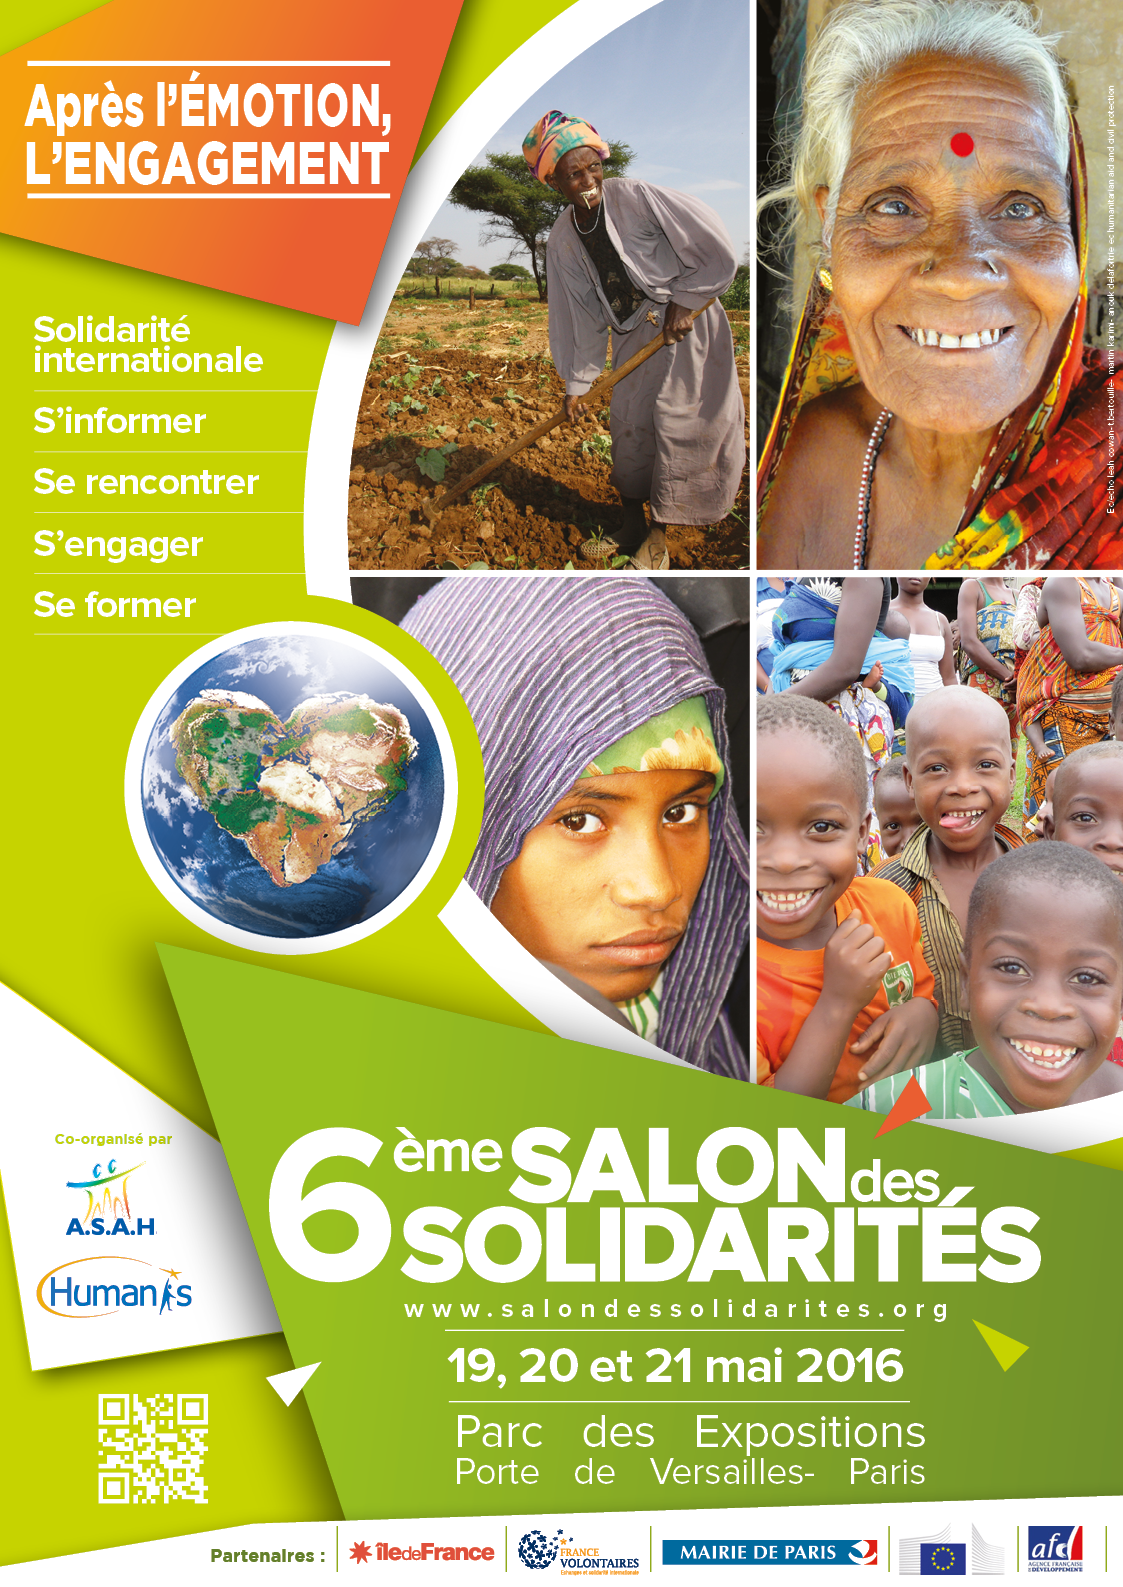 Epvn Au Salon Des Solidarités 2016 à Paris Porte De - Salon Paris Septembre 2016